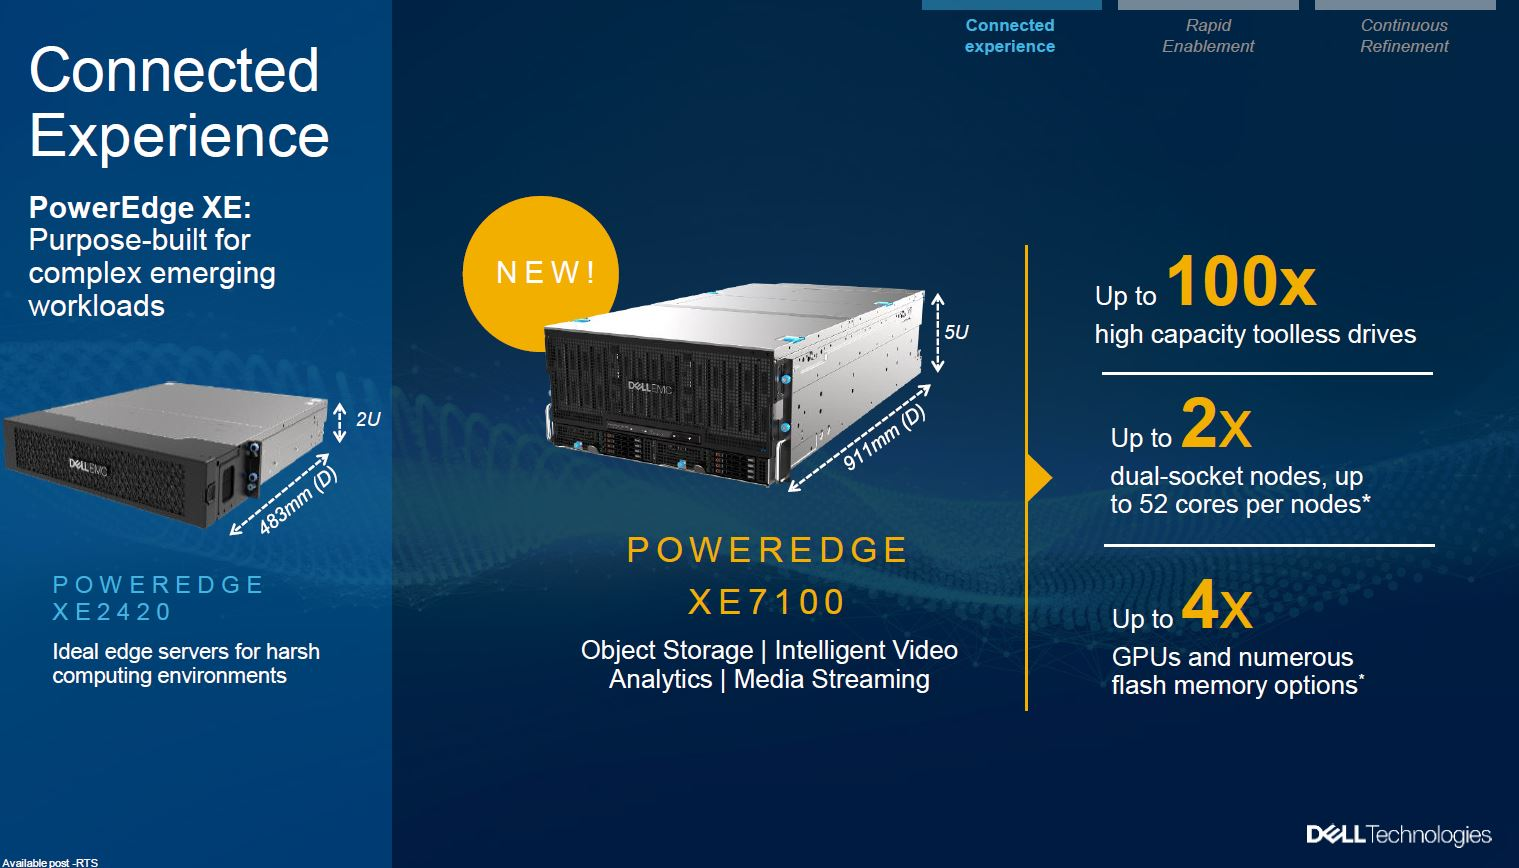 Dell EMC XE7100 Announcement Overview